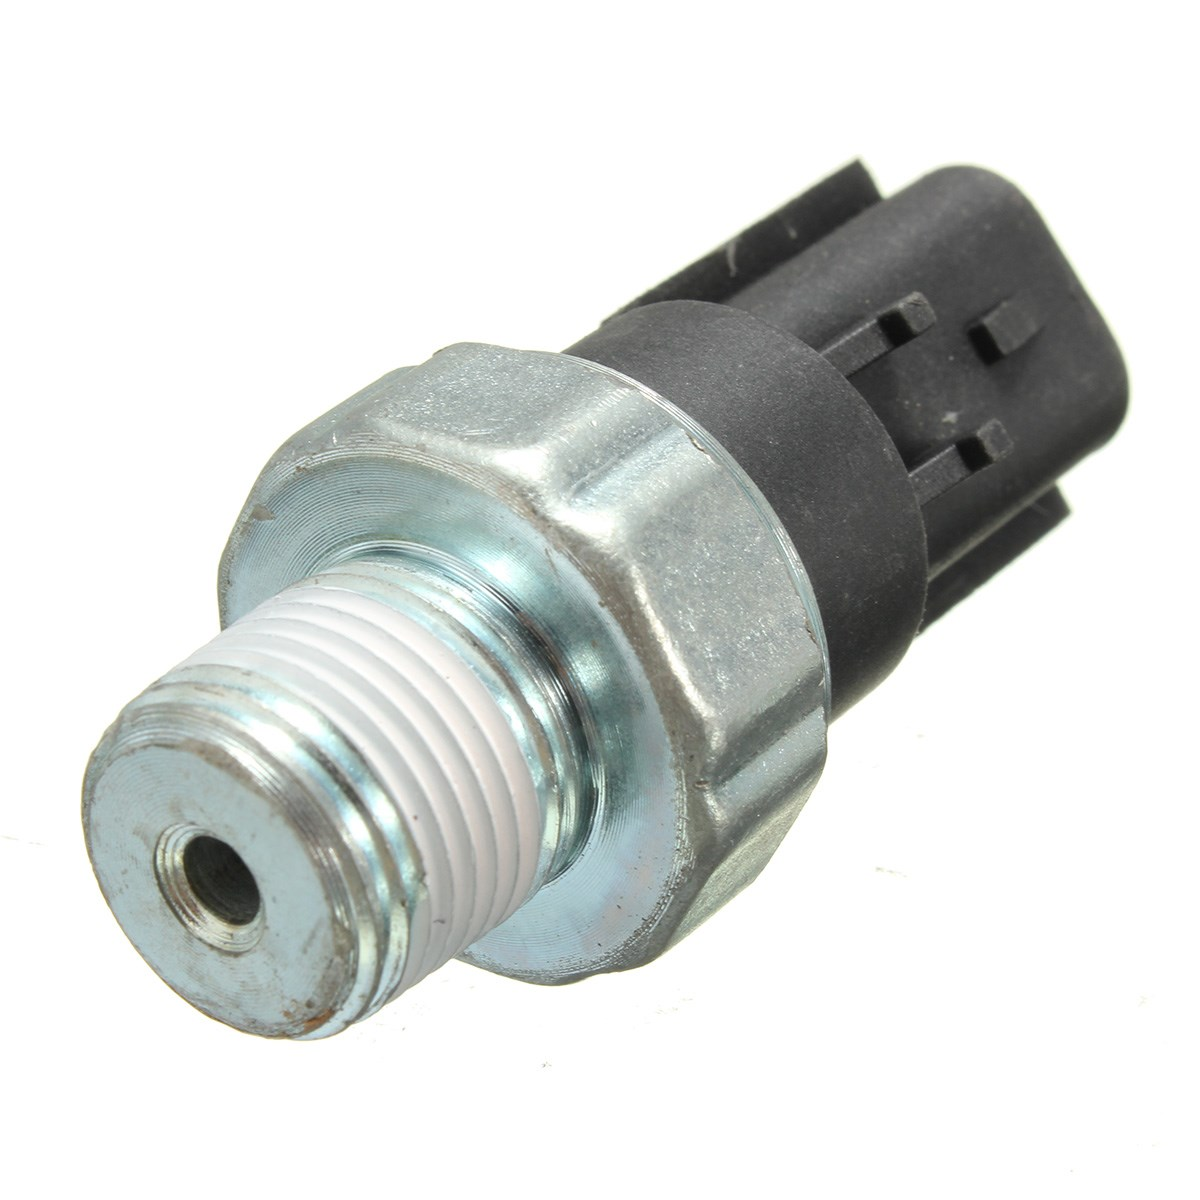 Engine Oil Pressure Switch Sensor reviews on dodge stratus 3 0 engine